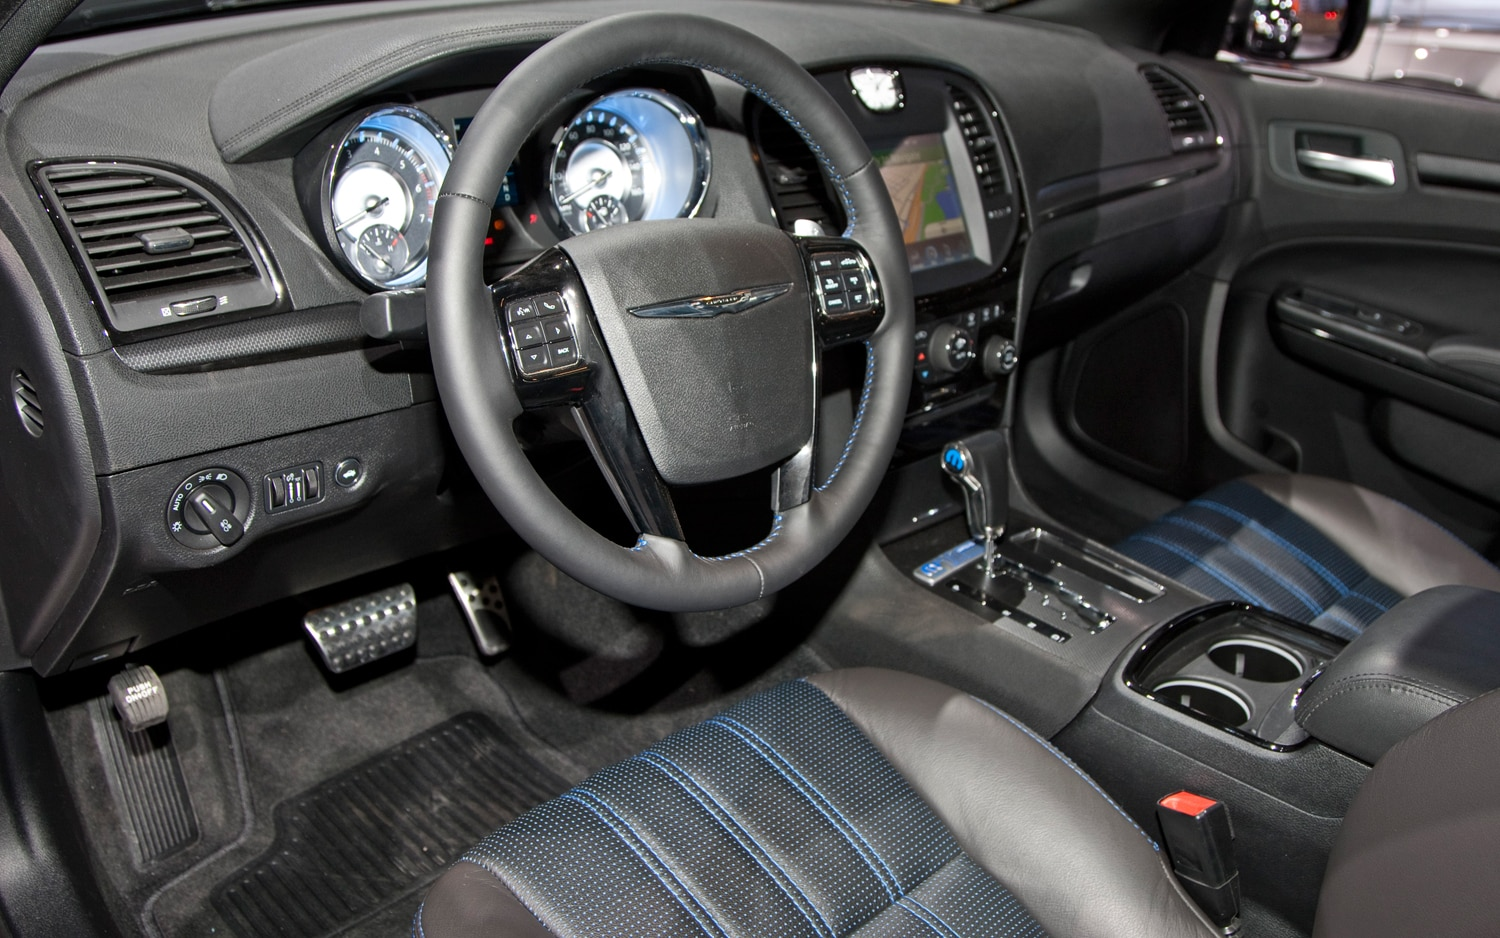 First look 2012 chrysler mopar 12 300 automobile magazine - Chrysler 300 interior accessories ...